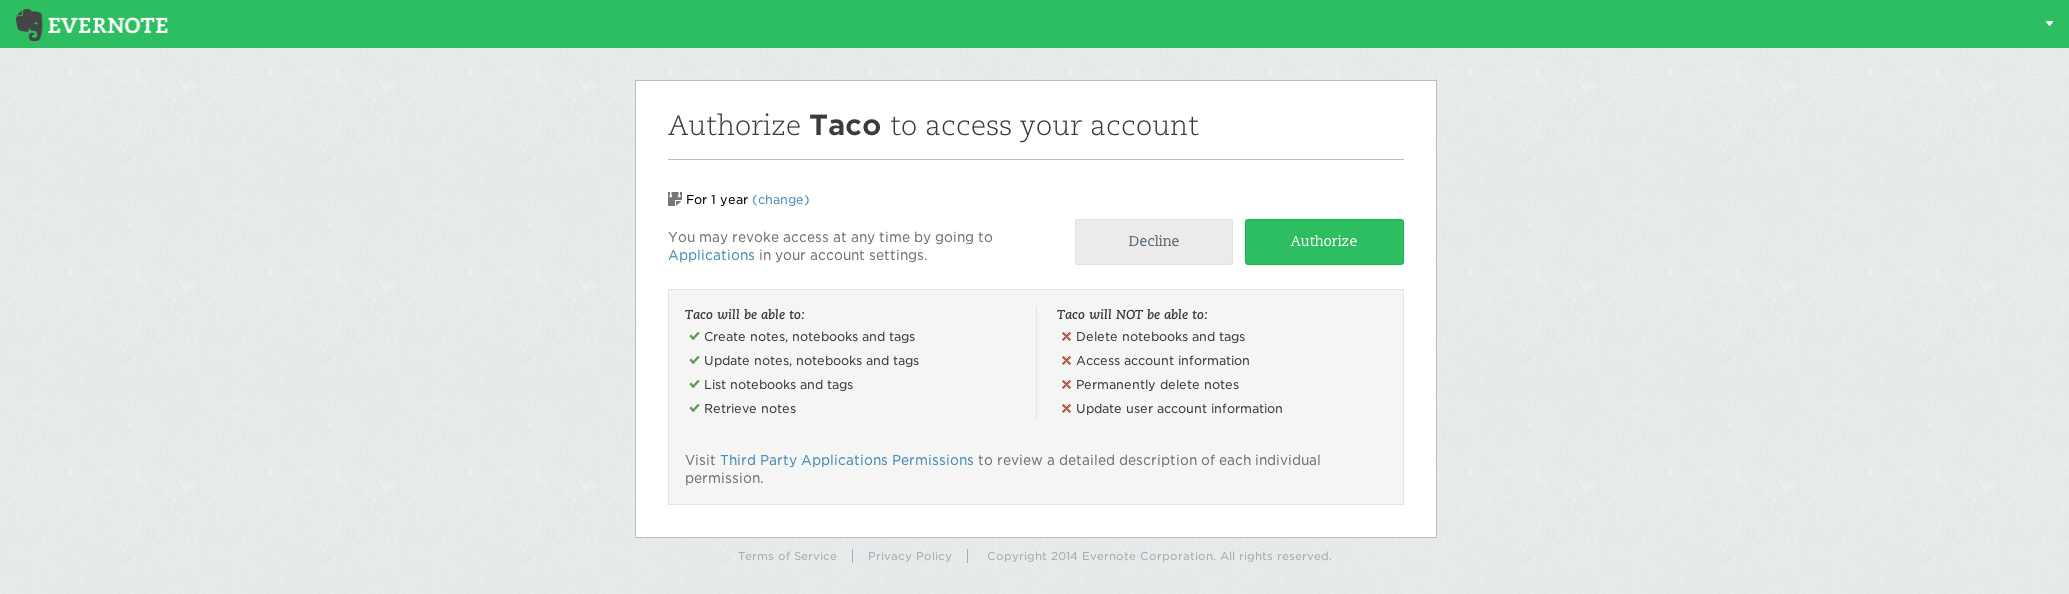 Taco Authorizing Evernote